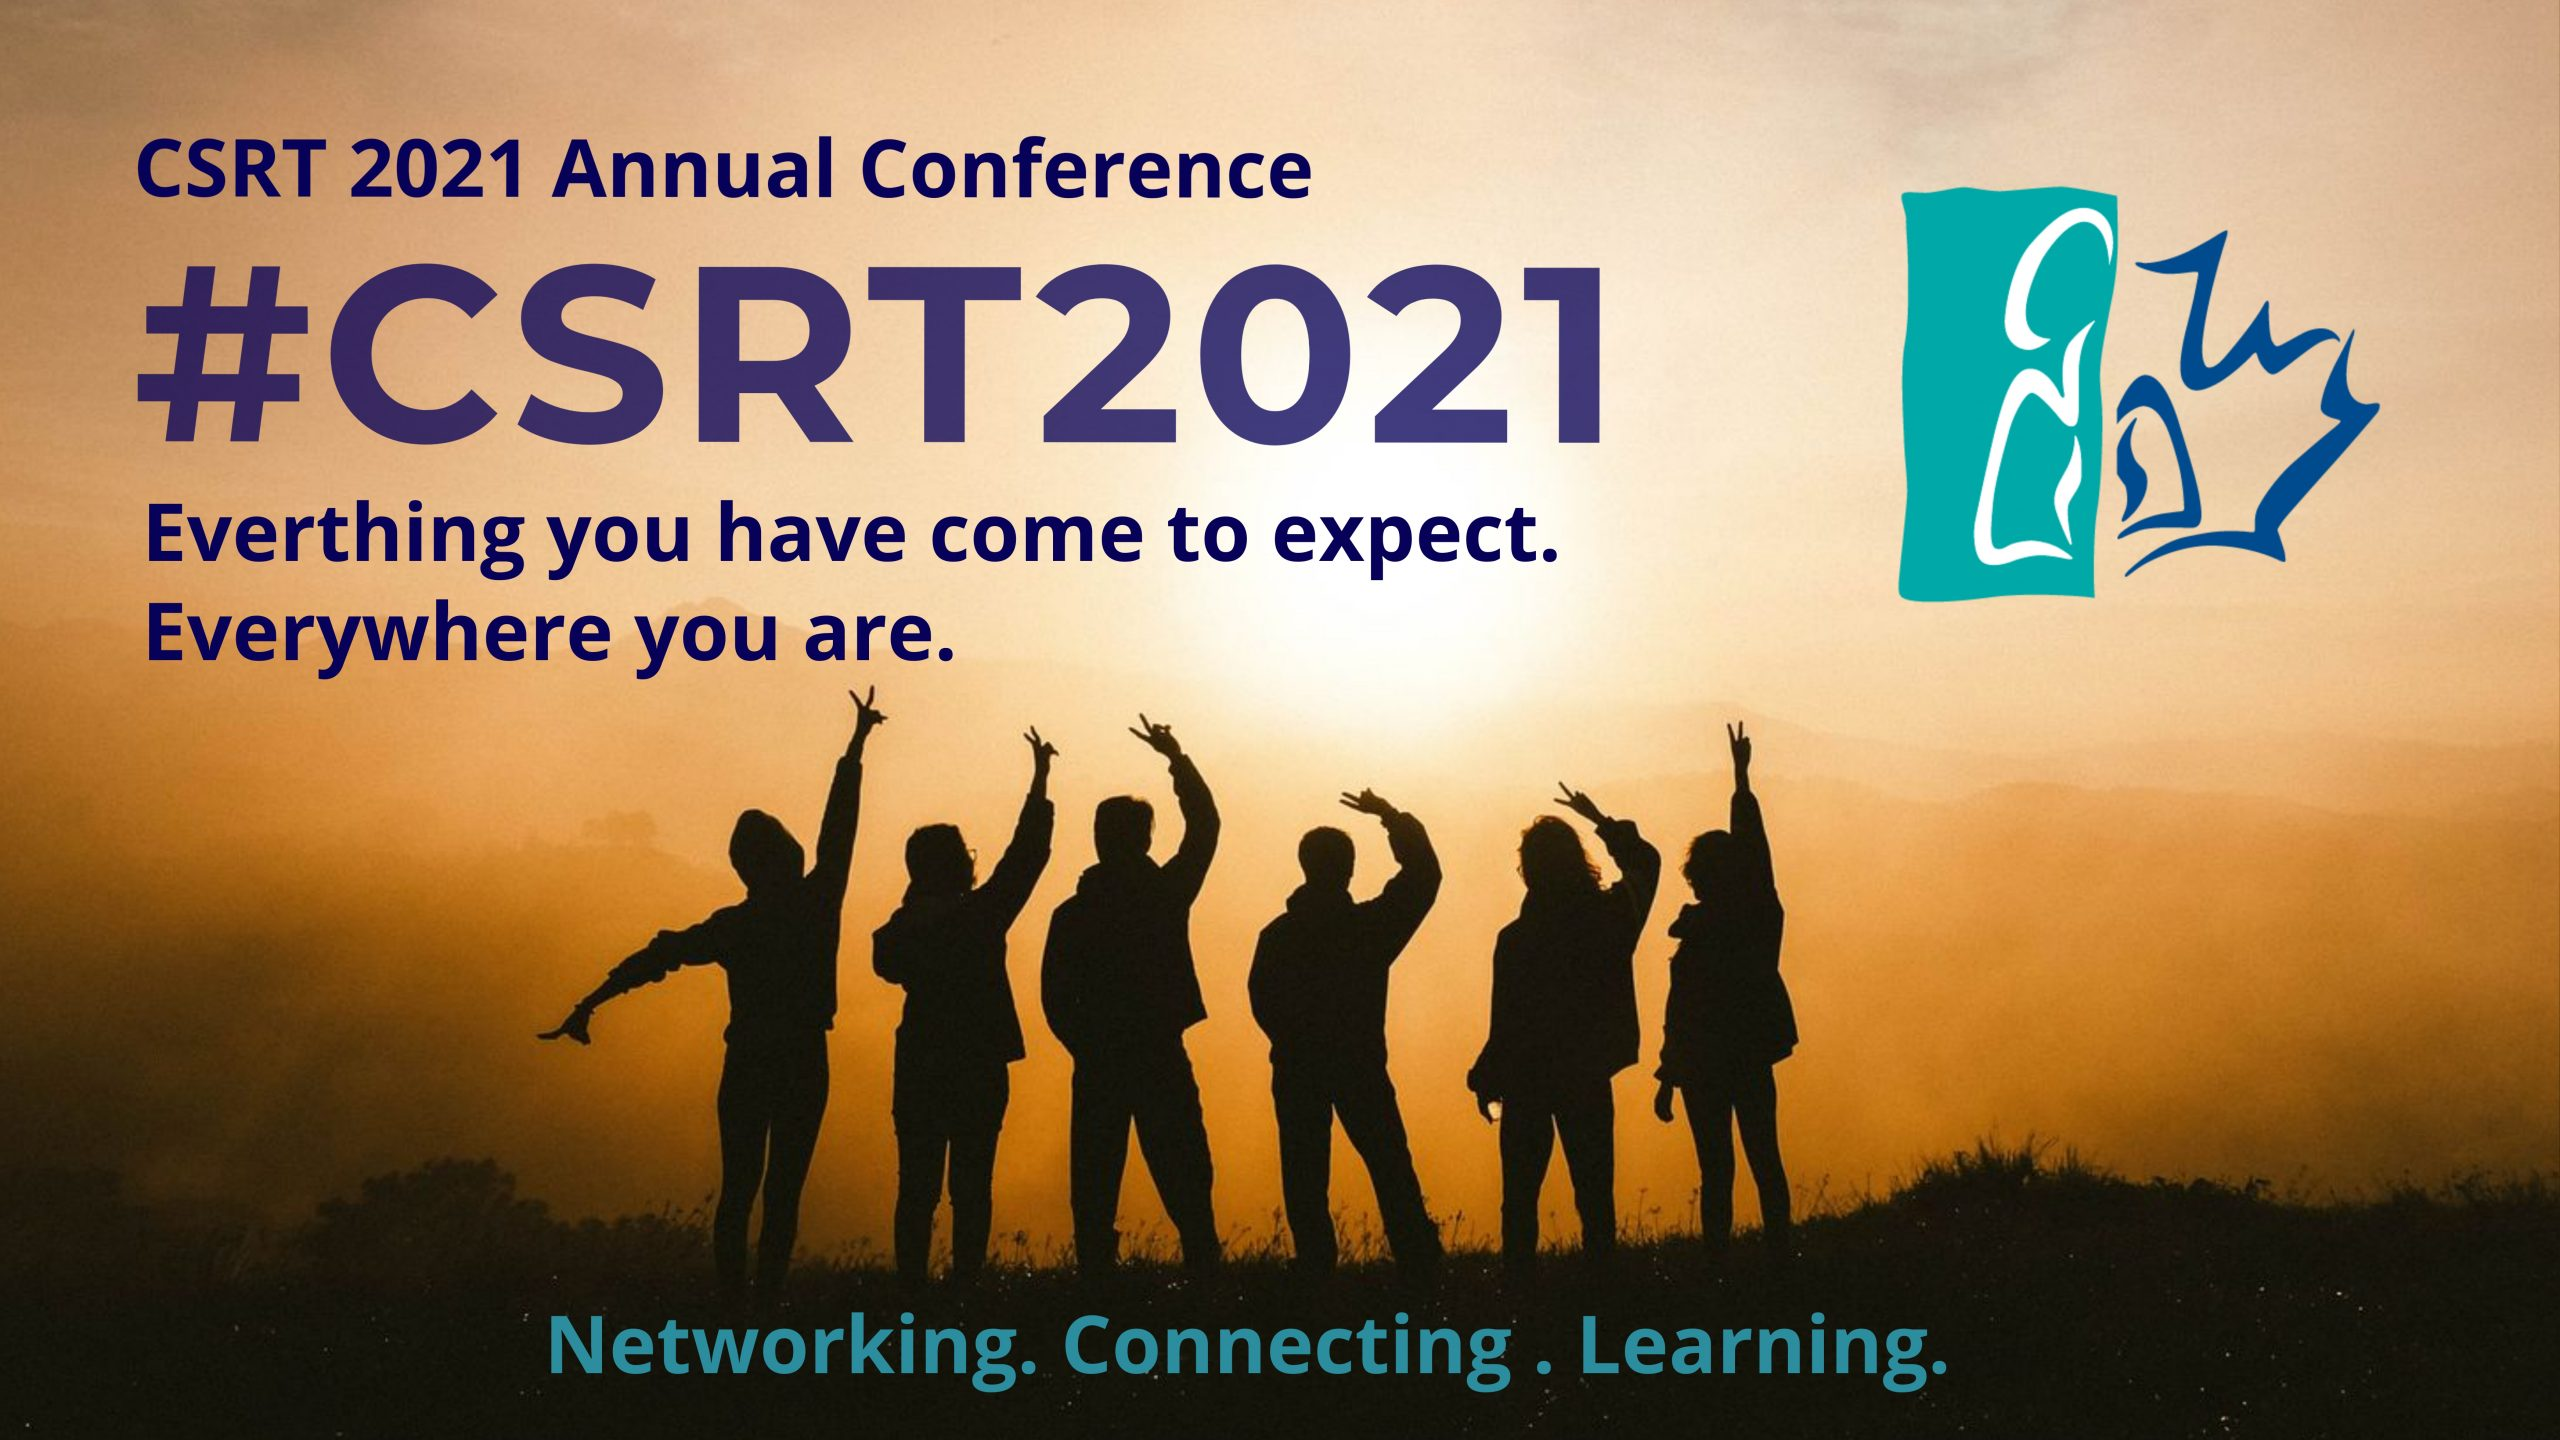 CSRT Annual Conference